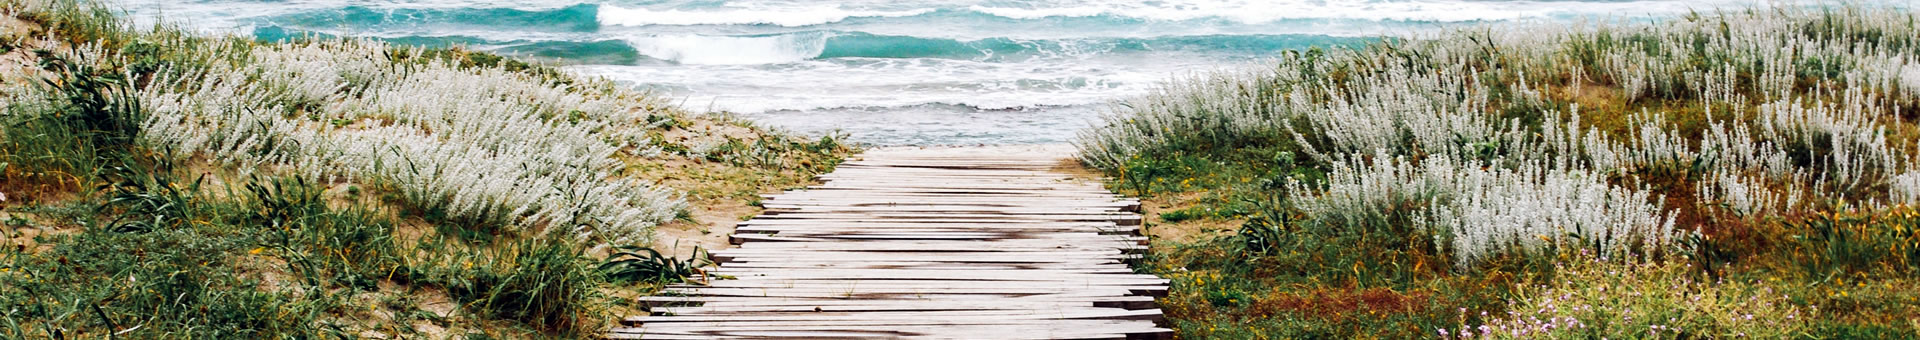 wooden path leading to the beach